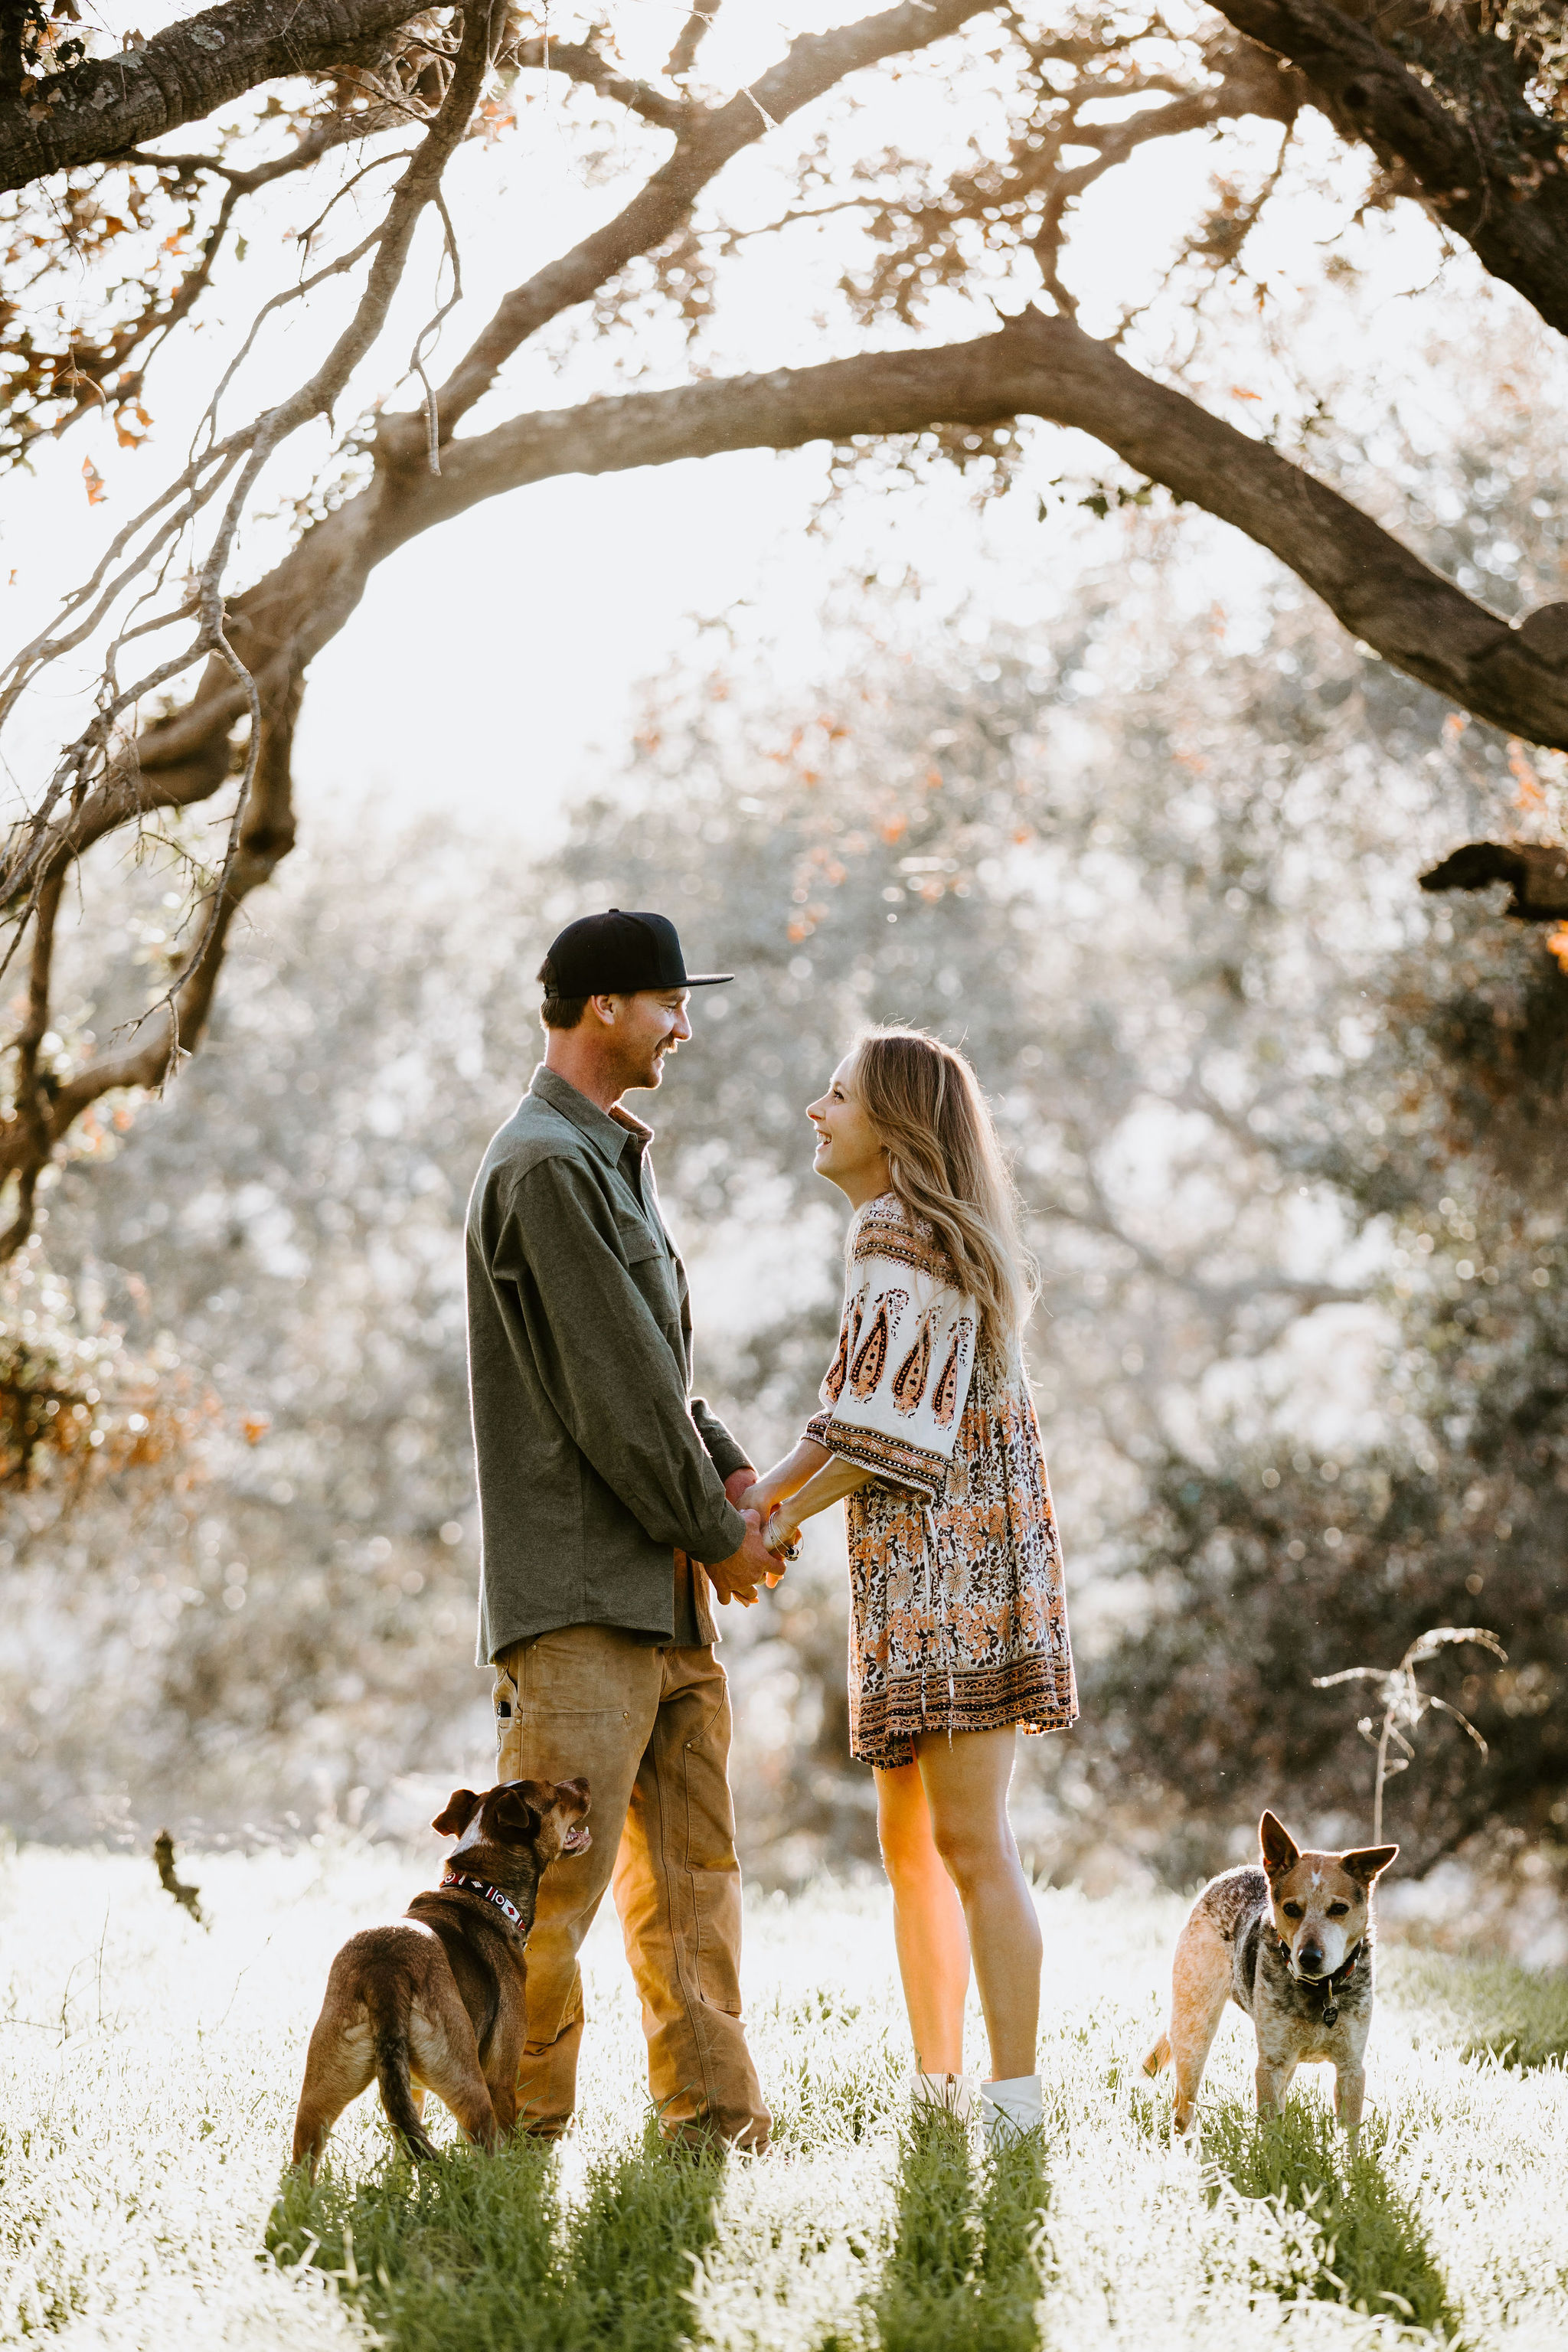 OjaiEngagementSession_Geoff&LyndsiPhotography_Eveline&Scotty11.jpg